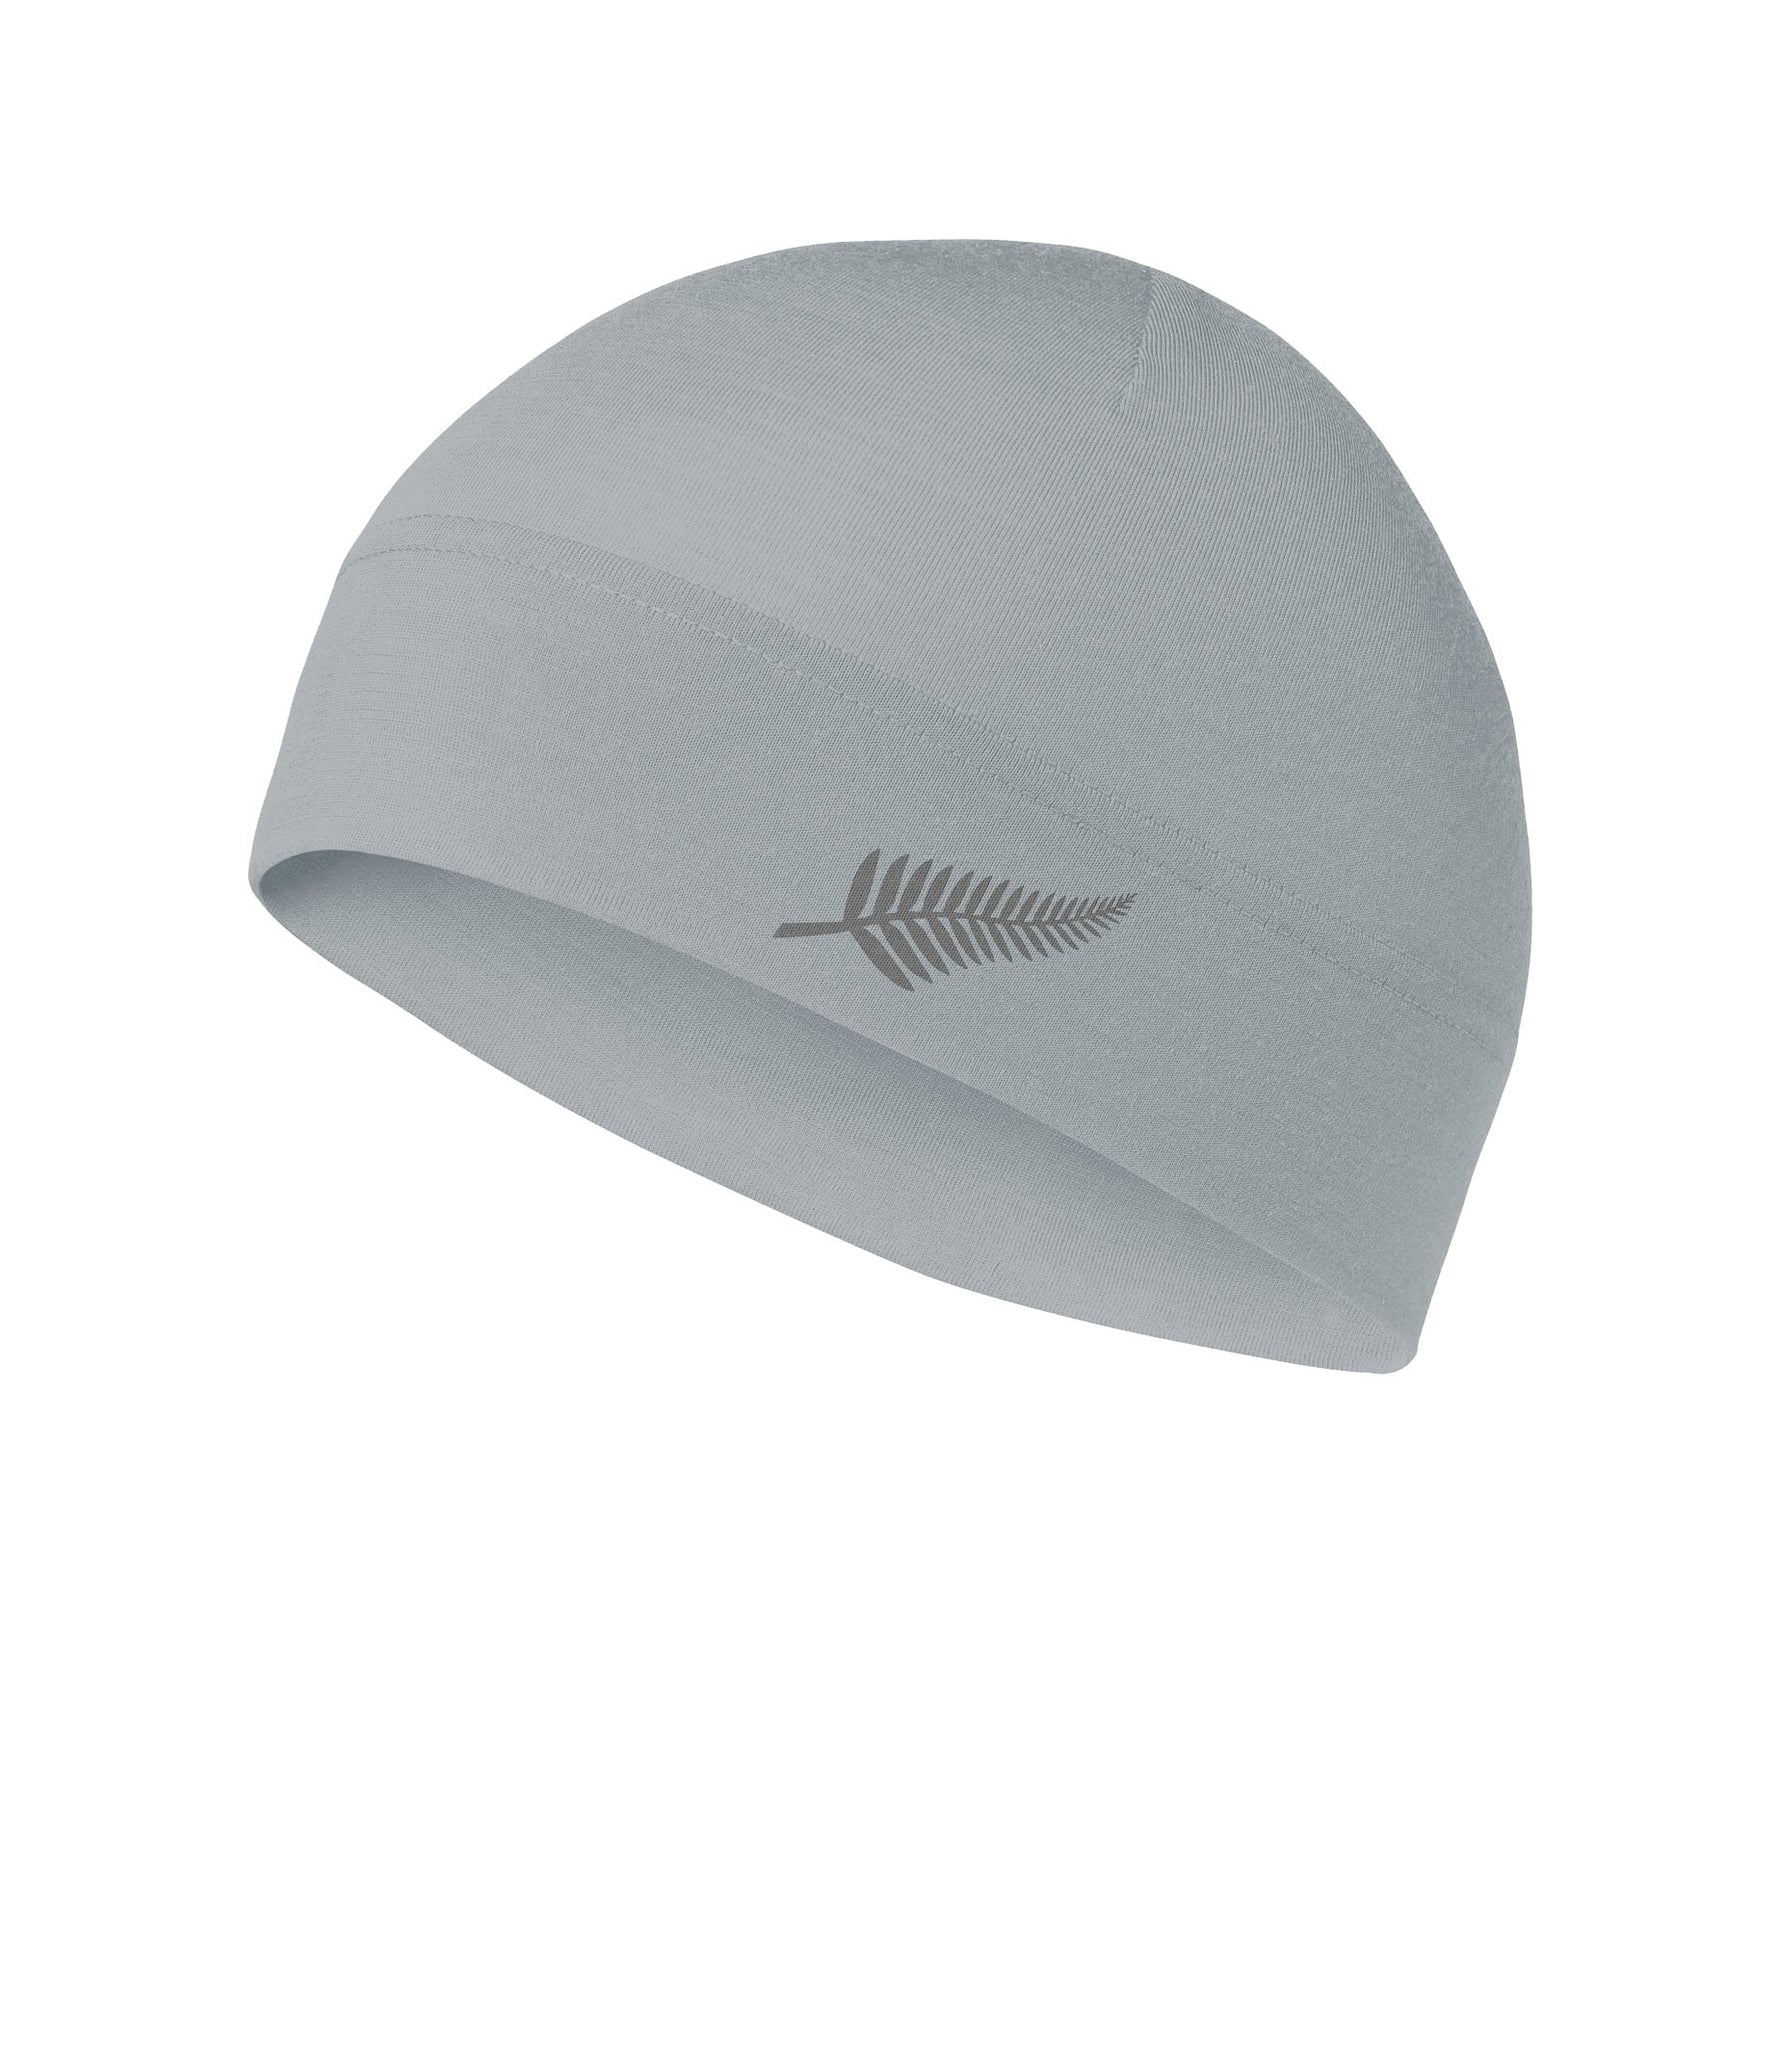 Merino Silver Beanie. Made in New Zealand